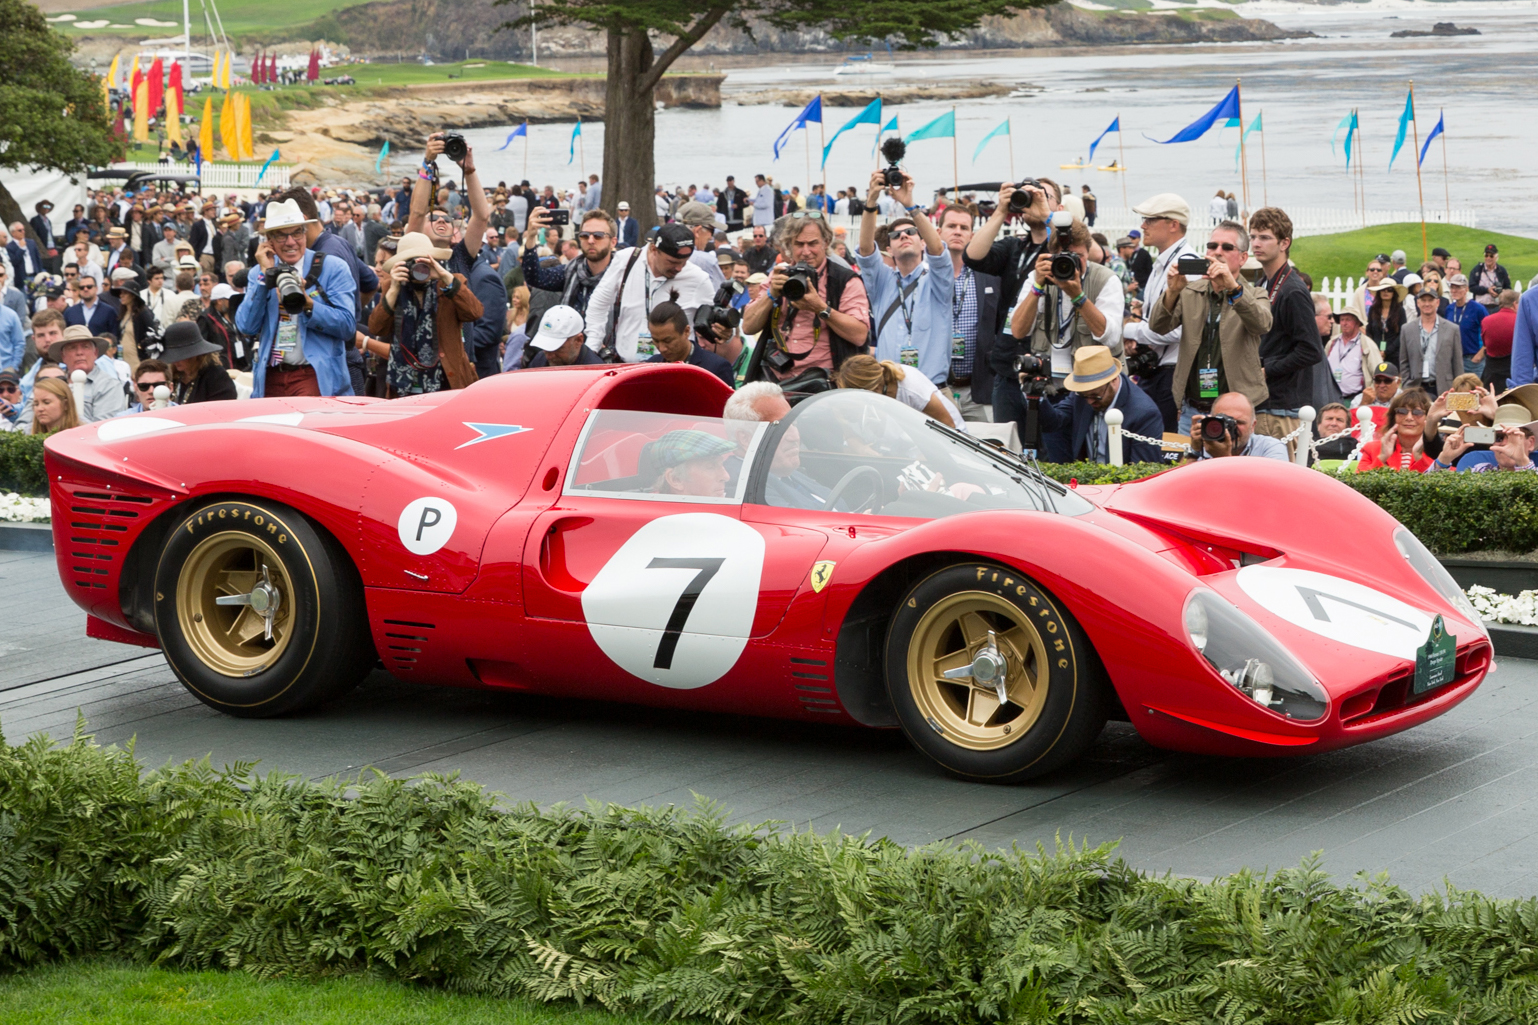 1966 Ferrari 330 P4 wins Gran Turismo Trophy at Pebble Beach 2016